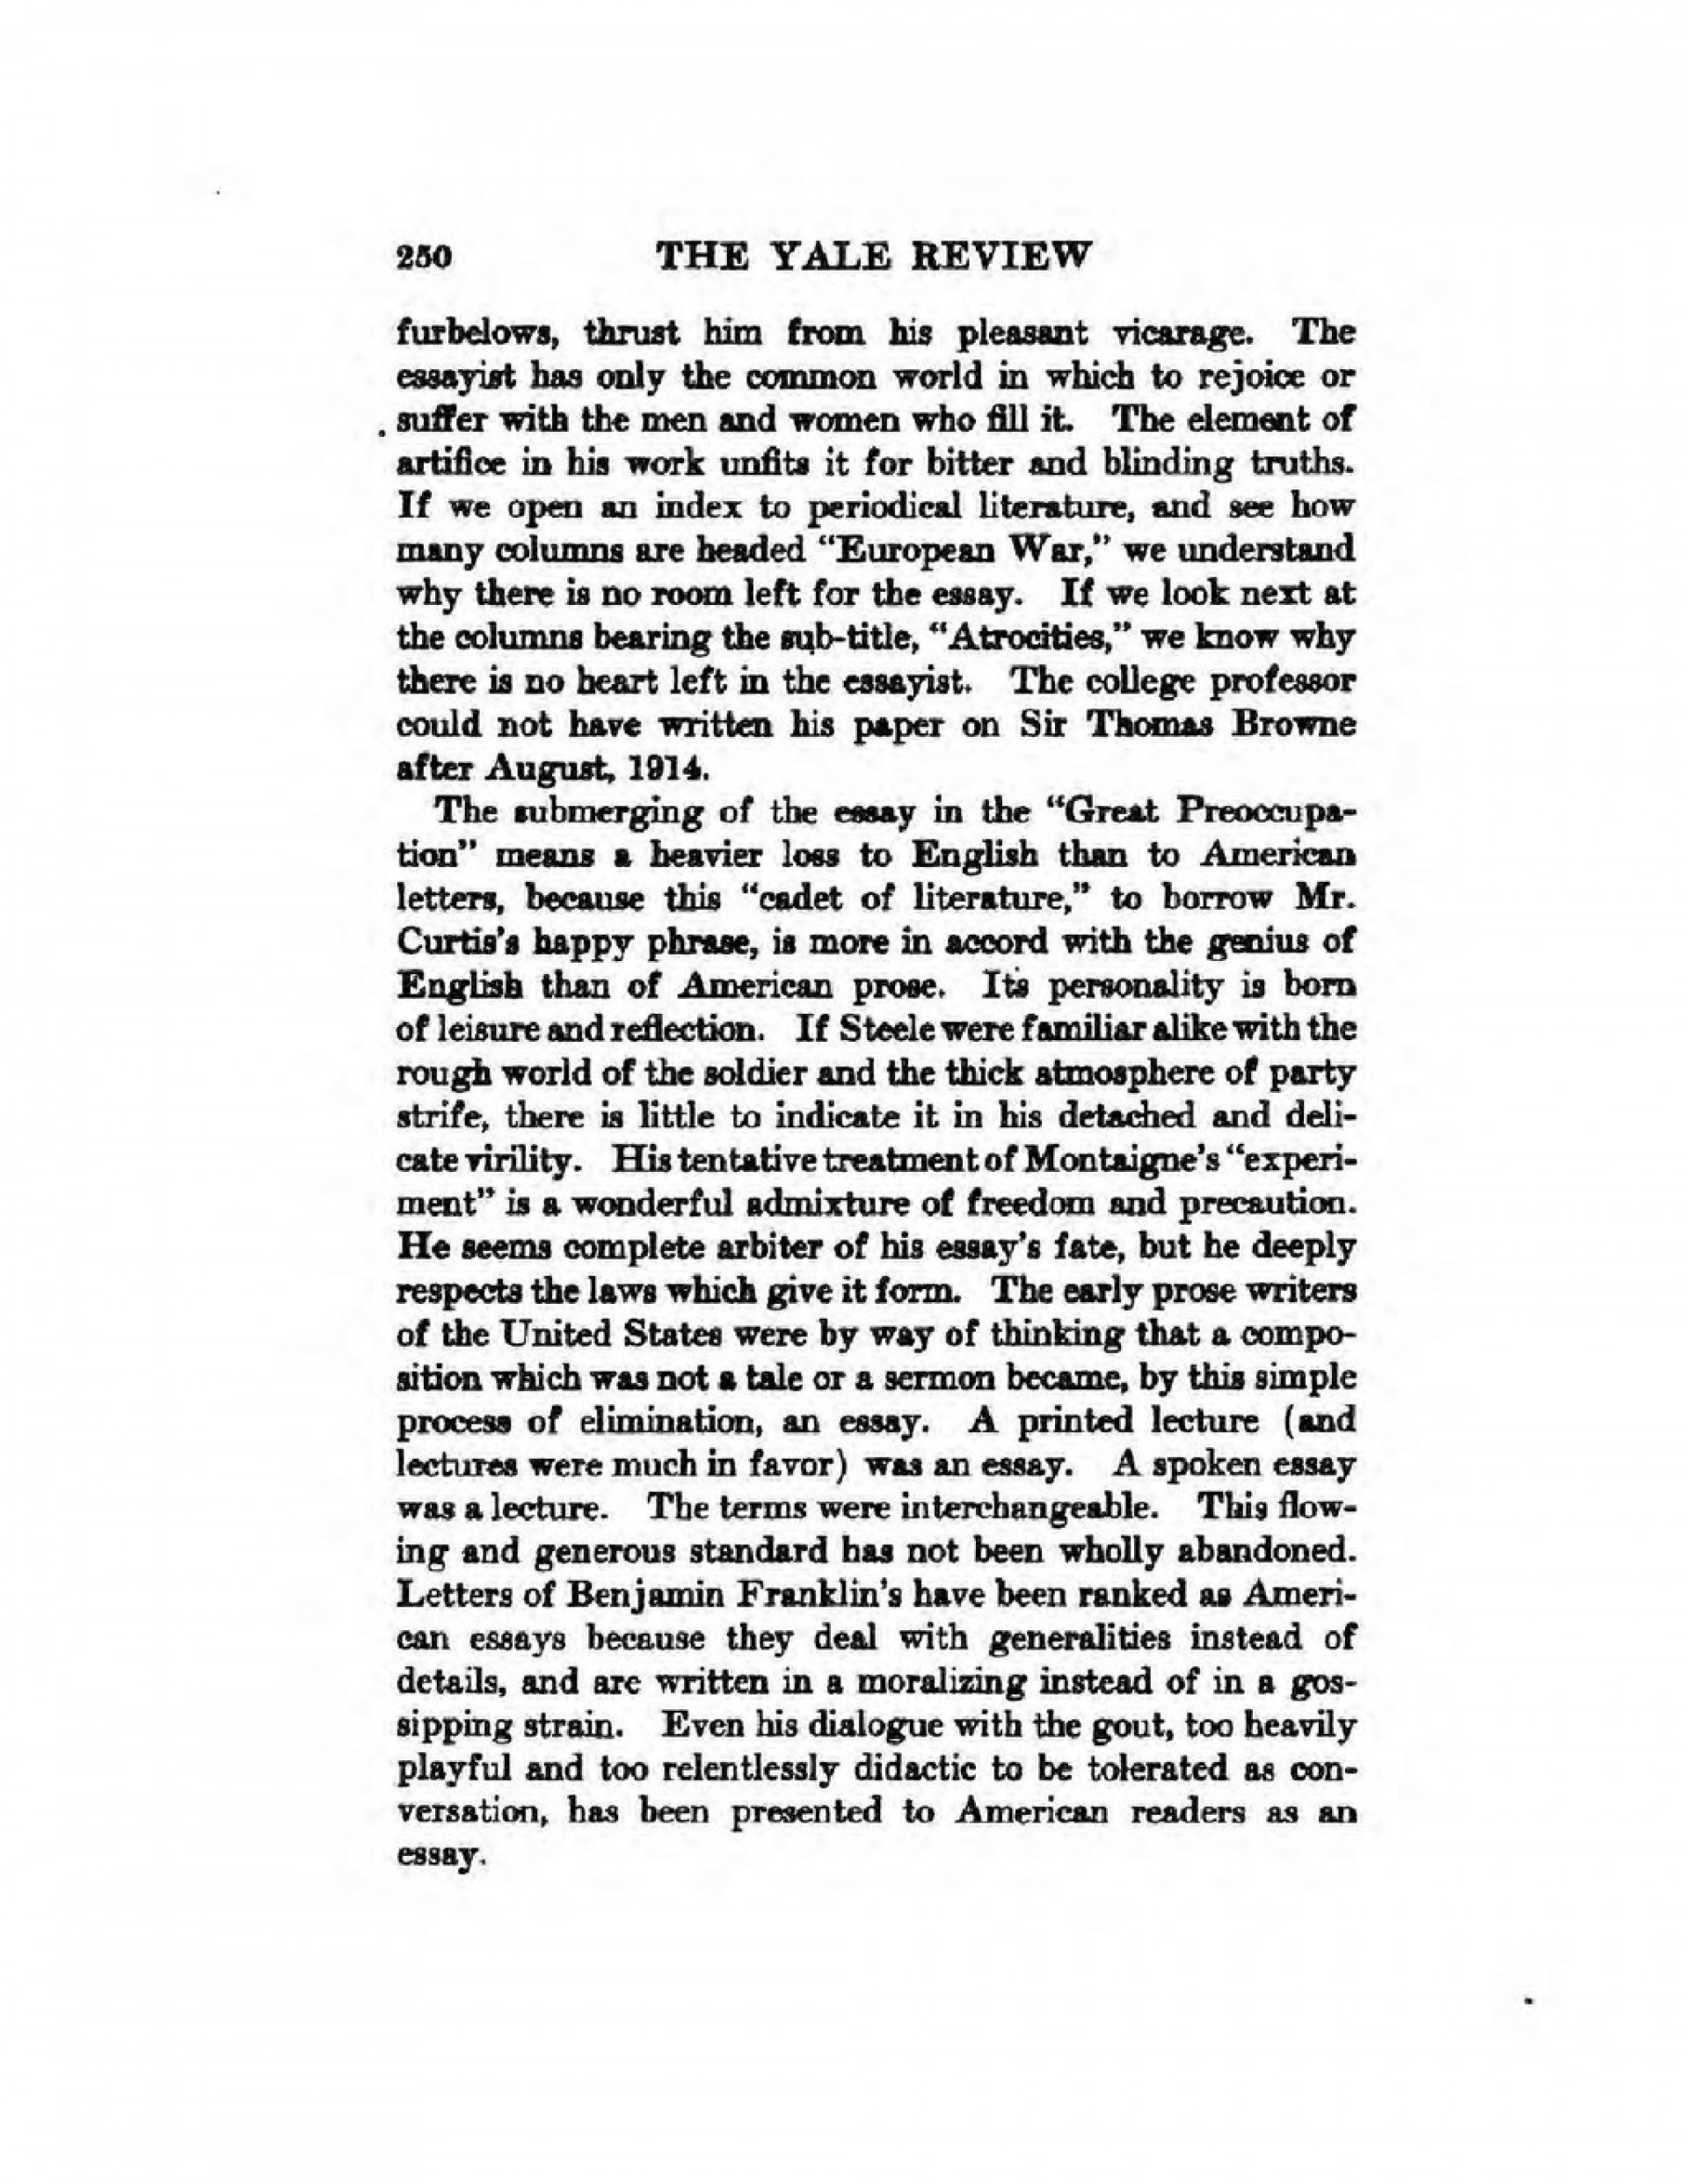 007 Essay Example What Is An American Page2 1024px The In War Time2c Agnes Repplier2c 1918 Stupendous Ideas Definition Crevecoeur Summary 1920